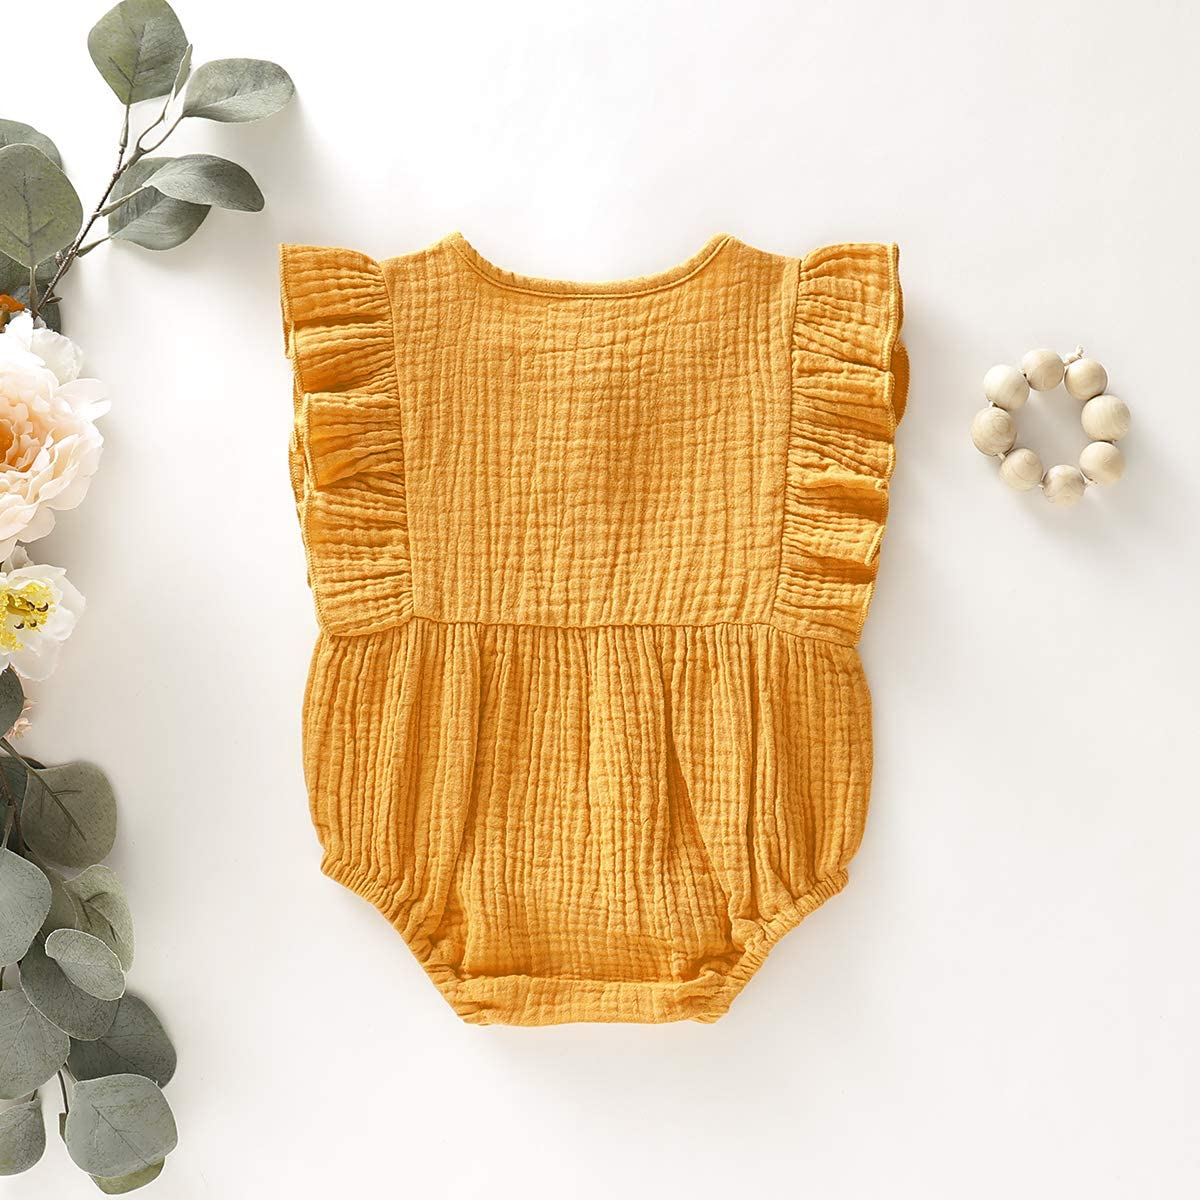 Newborn Baby Girl Cotton Linen Solid Romper Ruffle Sleeve One-Piece Bodysuit Infant Summer Outfits